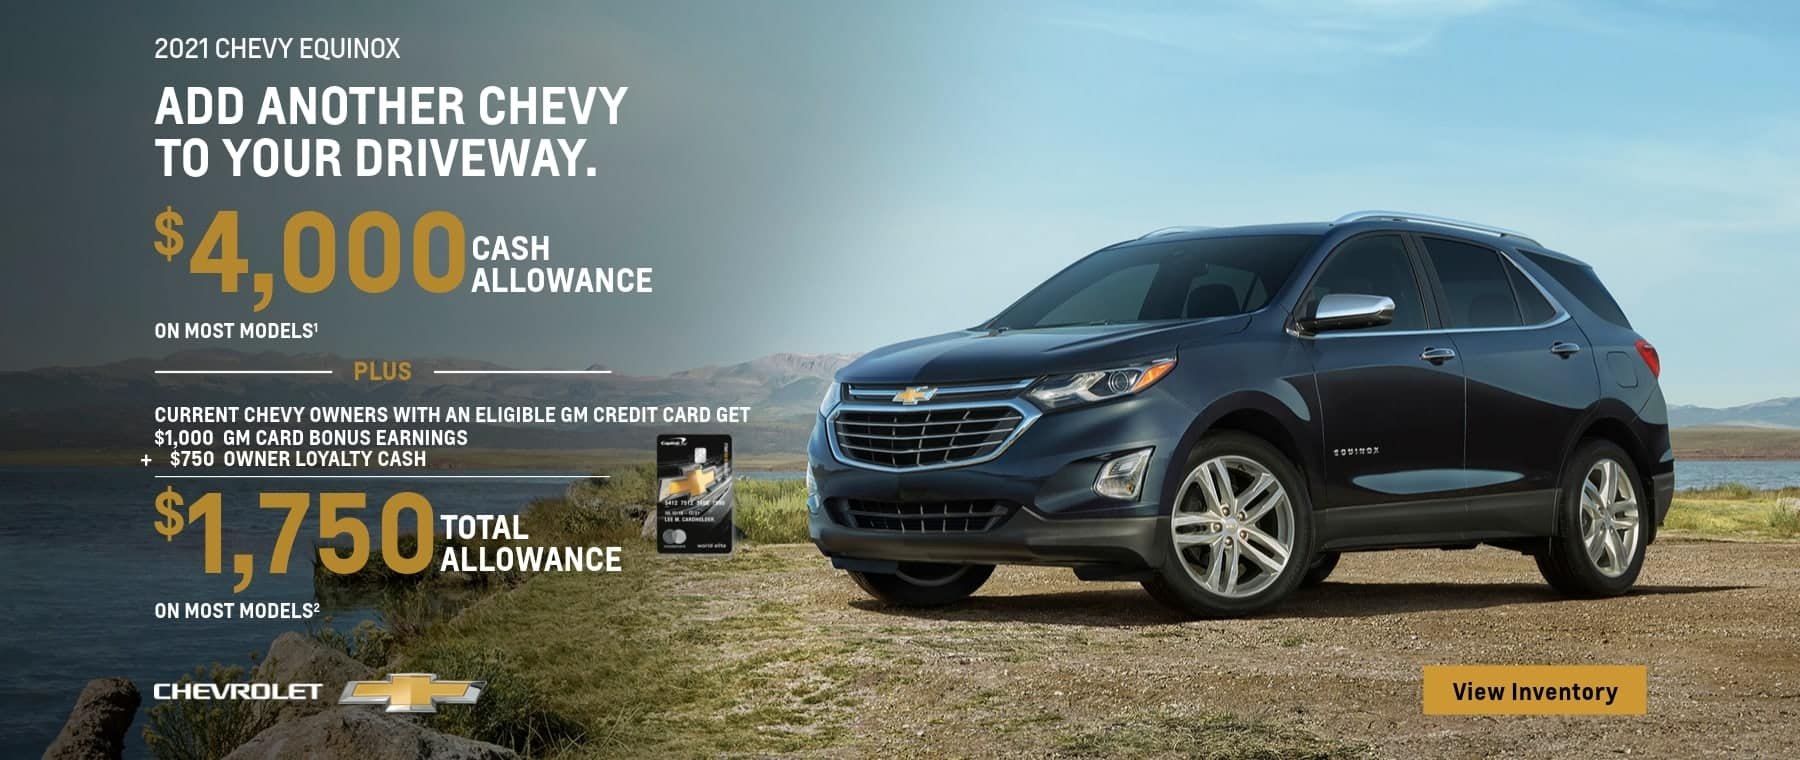 2021 Chevy Equinox offer